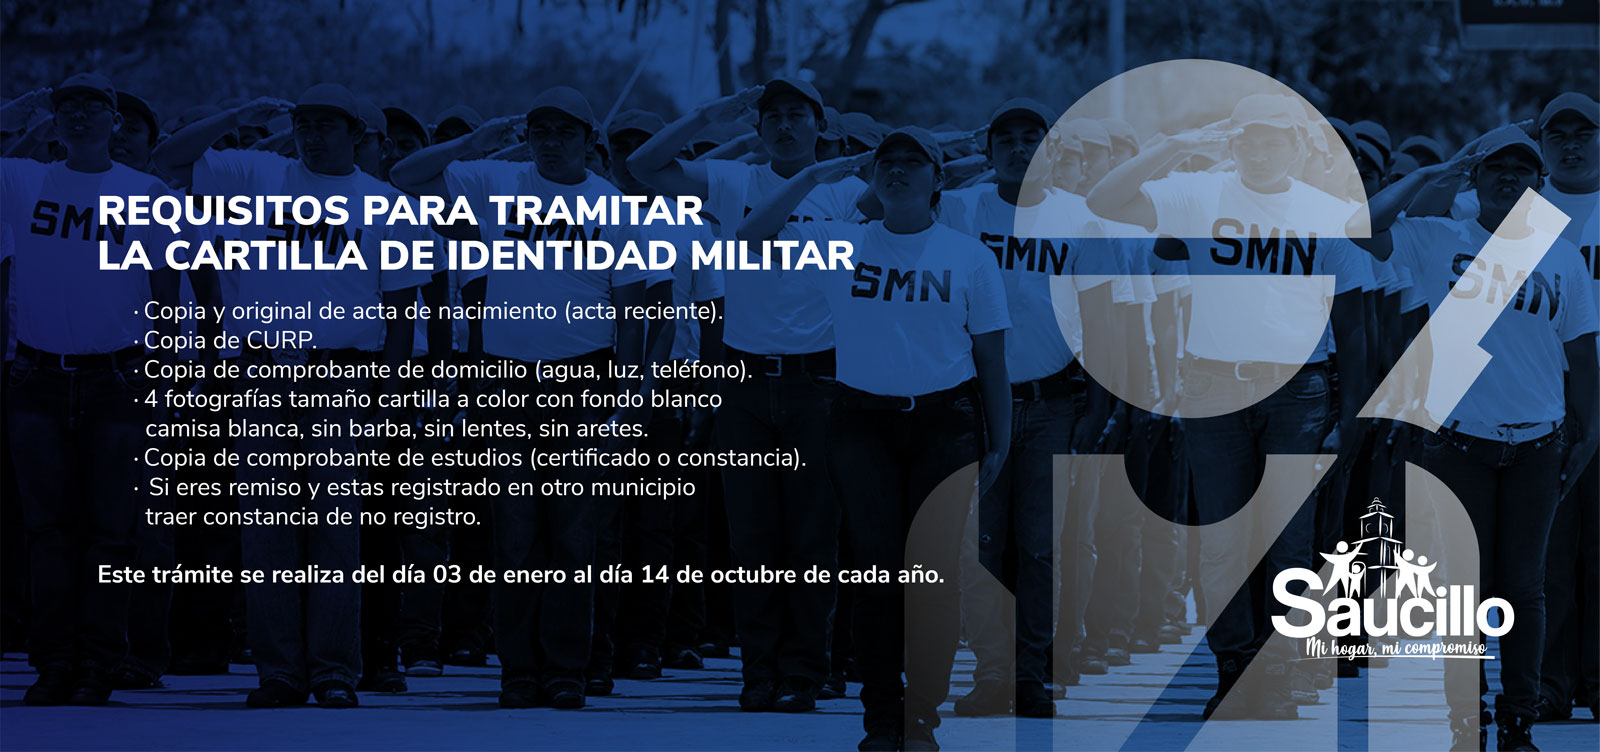 Requisitos para tramitar la cartilla de identidad militar